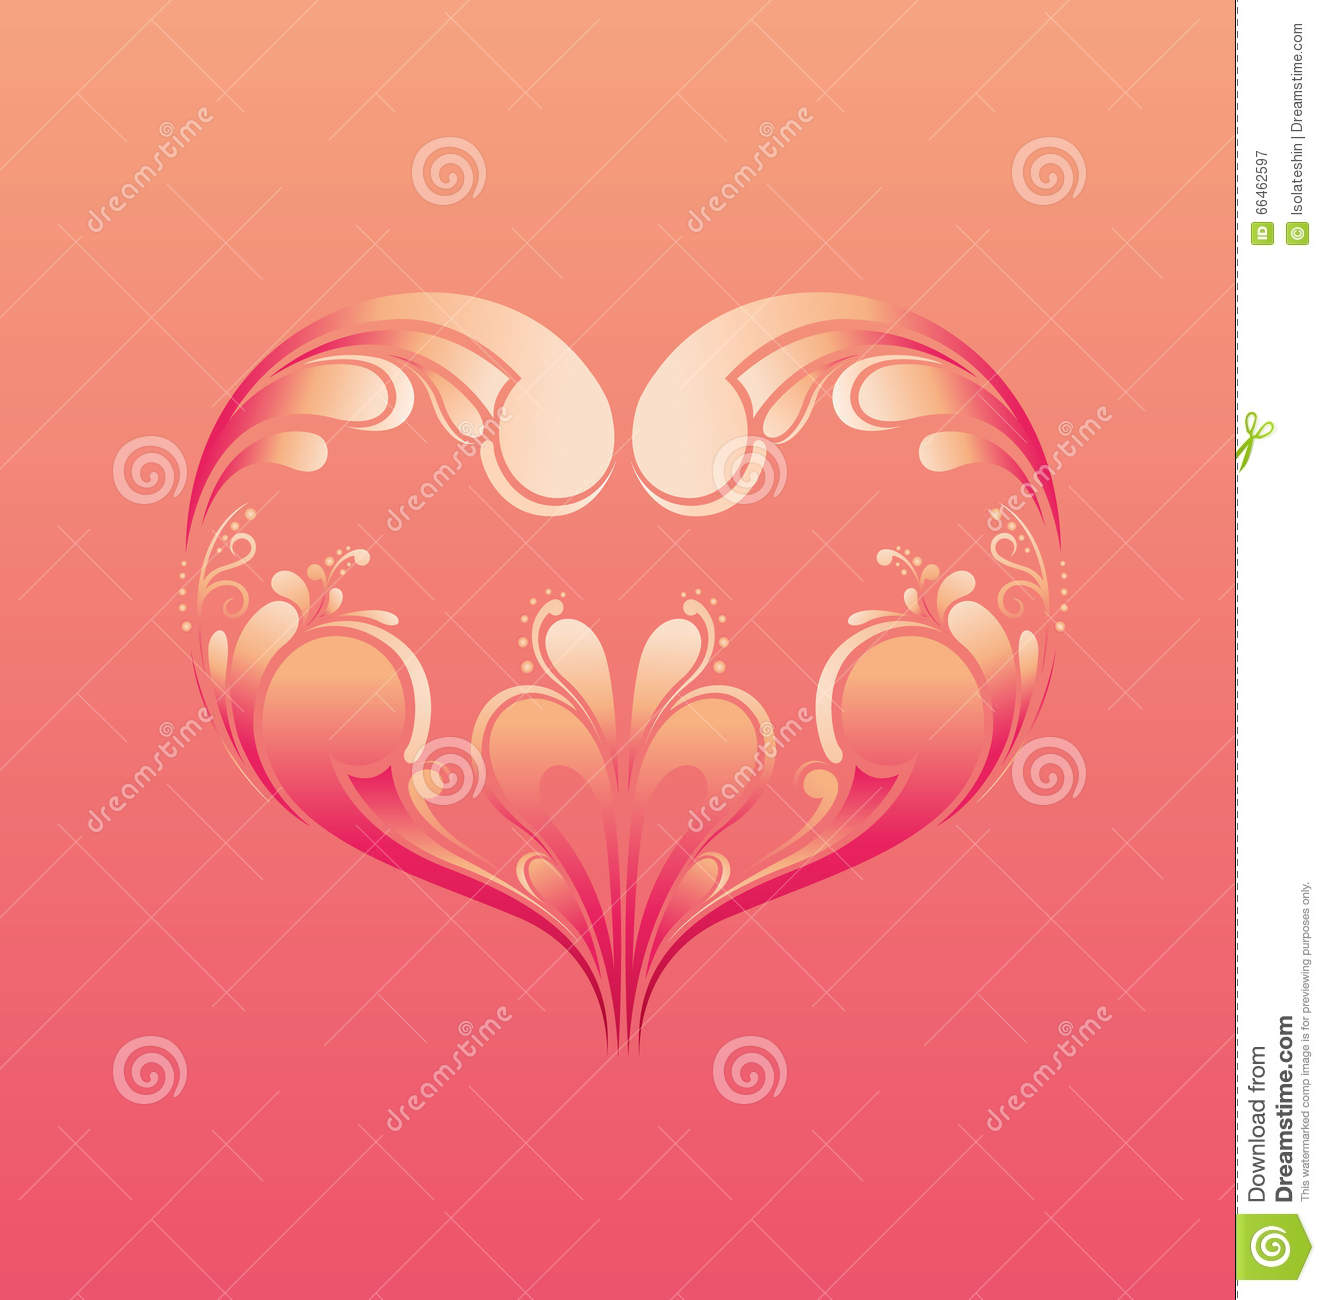 Happy Valentine S Day Greeting Card With Ornamental Heart